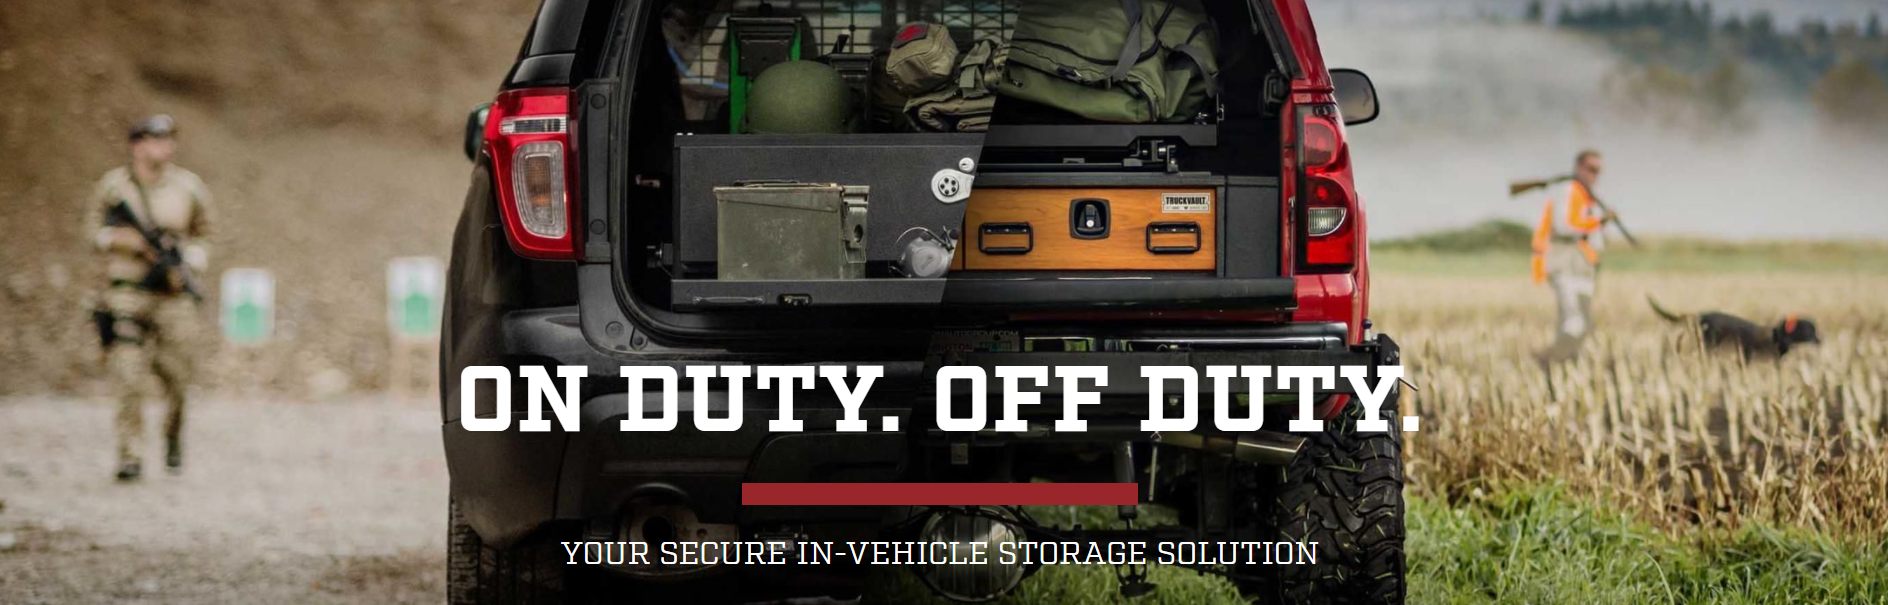 secure-in-vehicle-storage-systems-truckvault.png